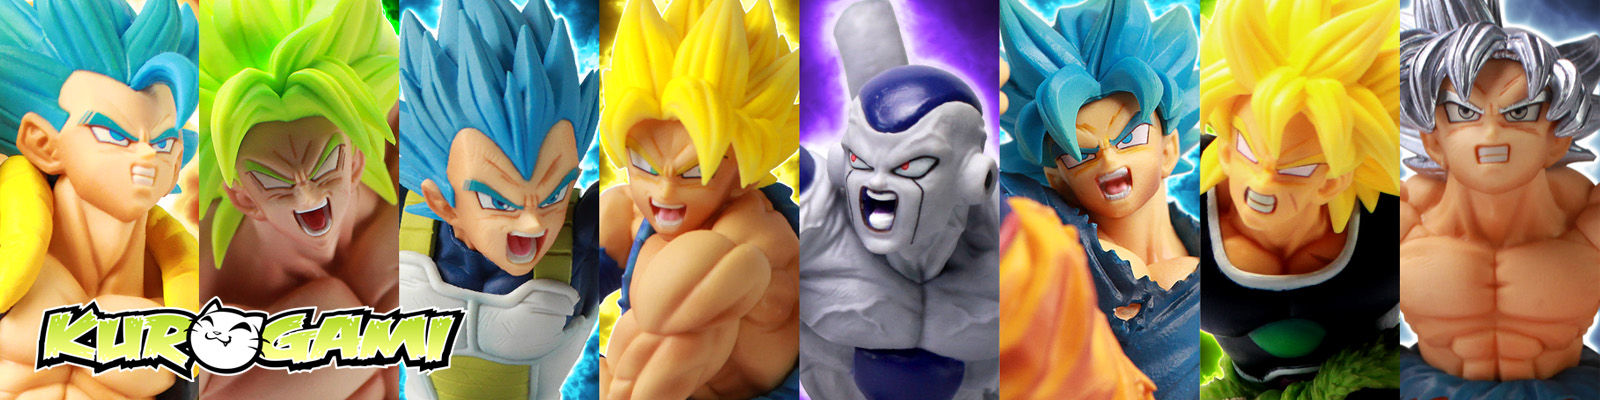 Dragon-Ball-Z-Battle-Banpresto